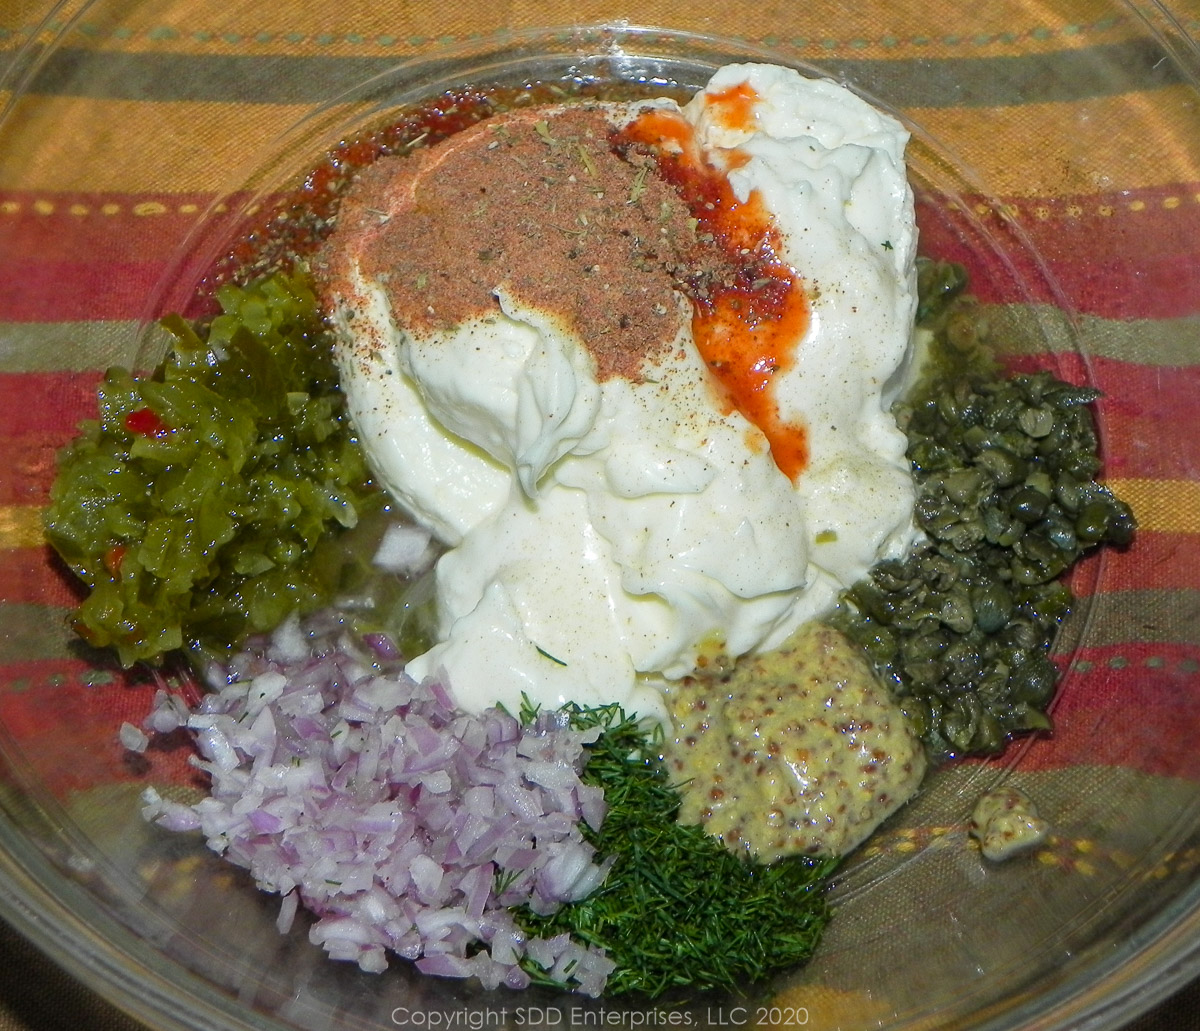 ingredients for creole tartar sauce in a glass bowl